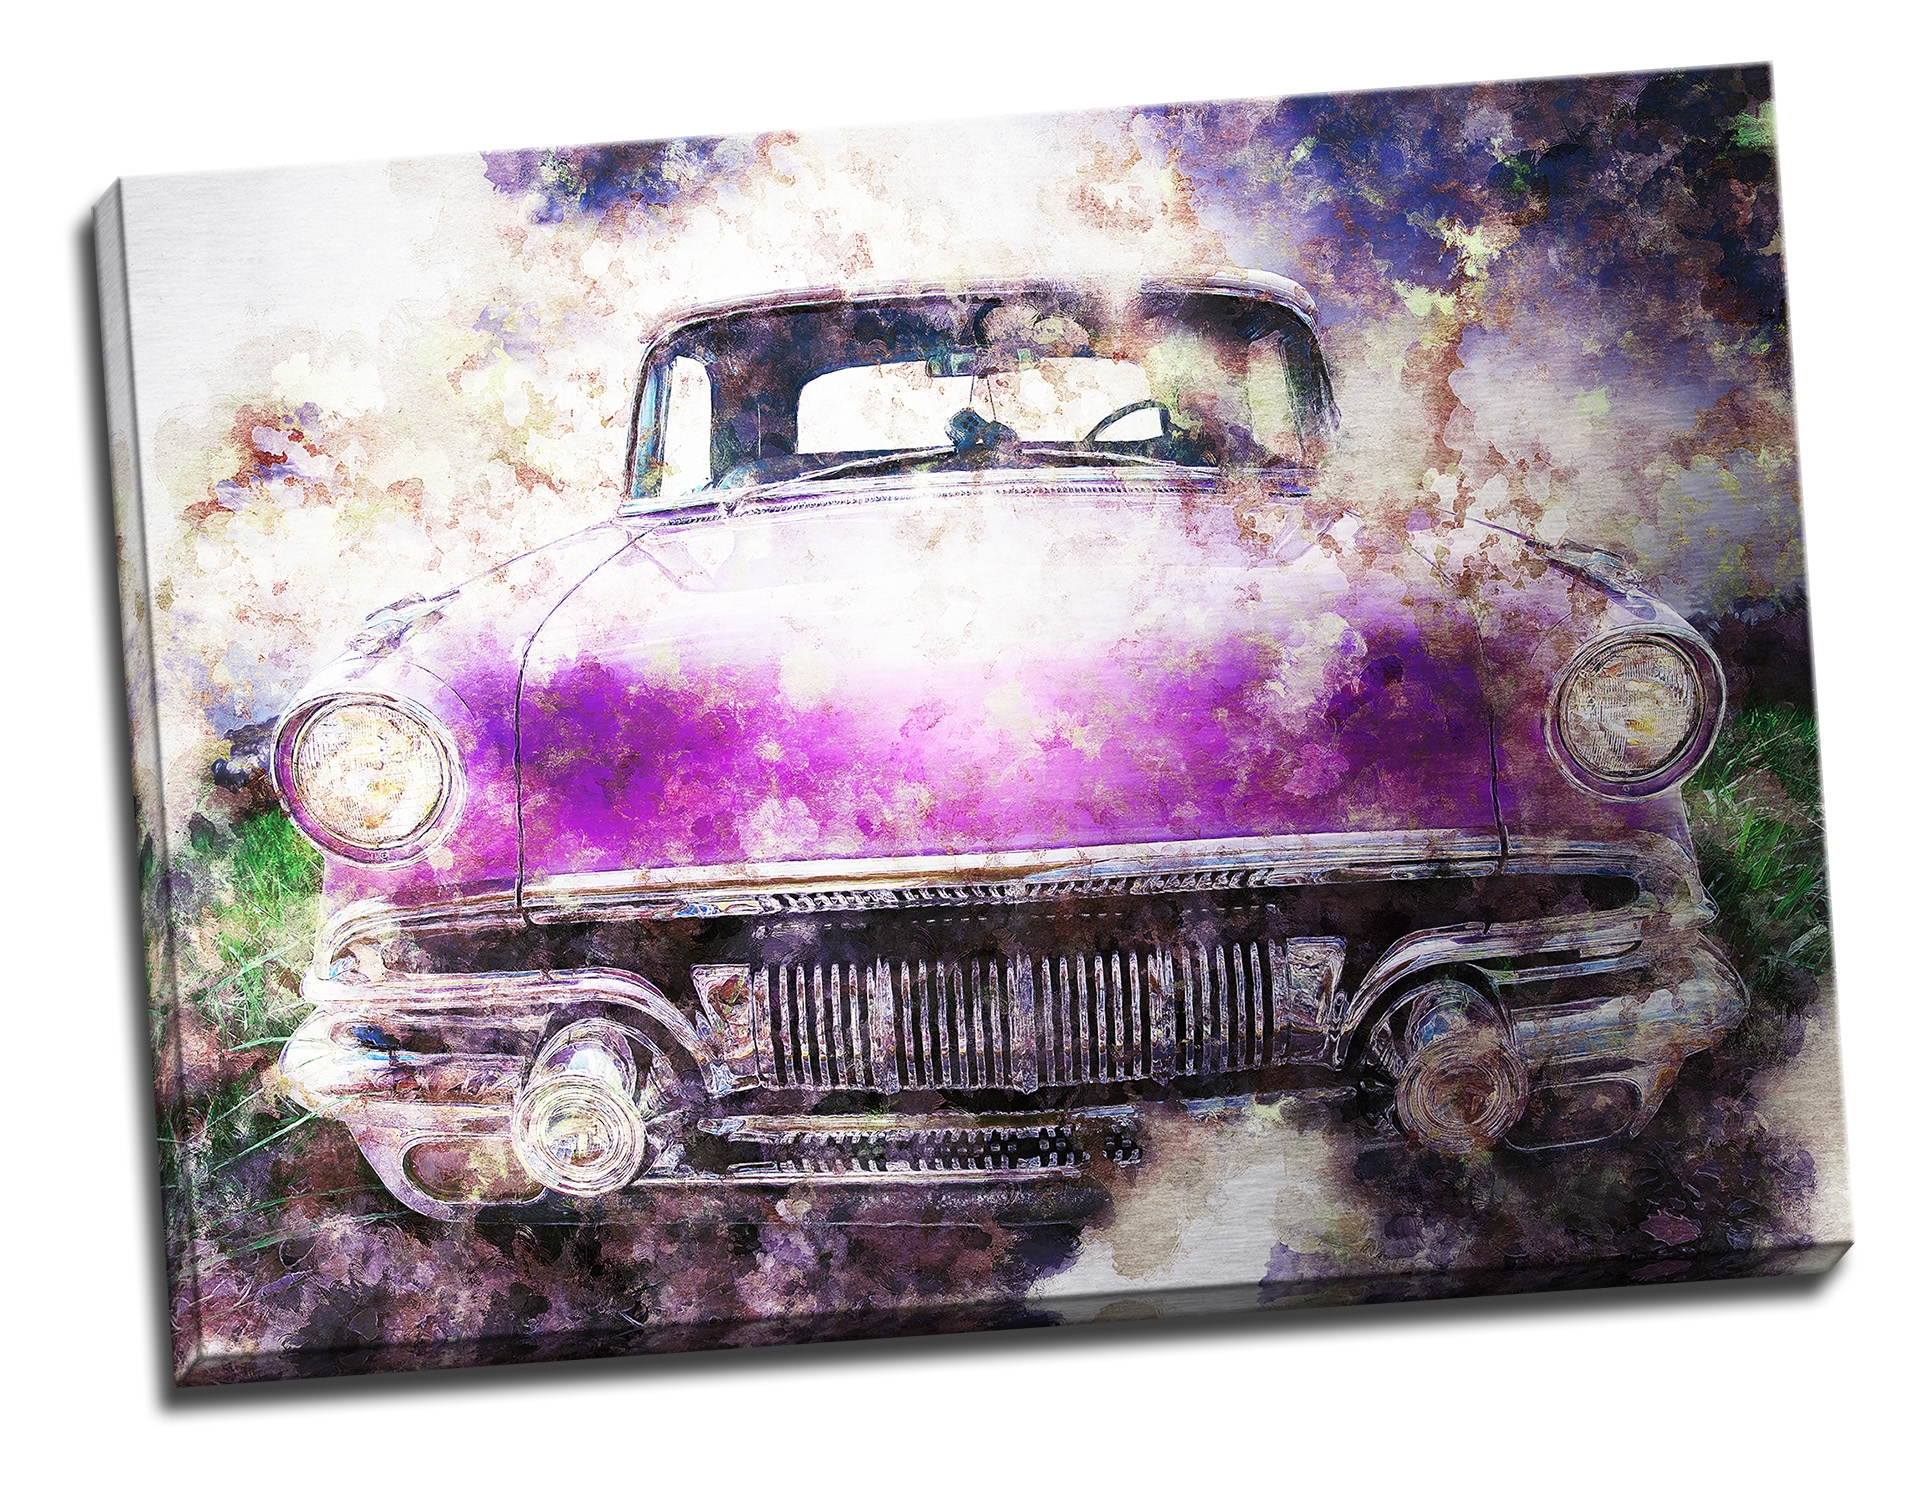 Tablou din aluminiu striat Purple Ride